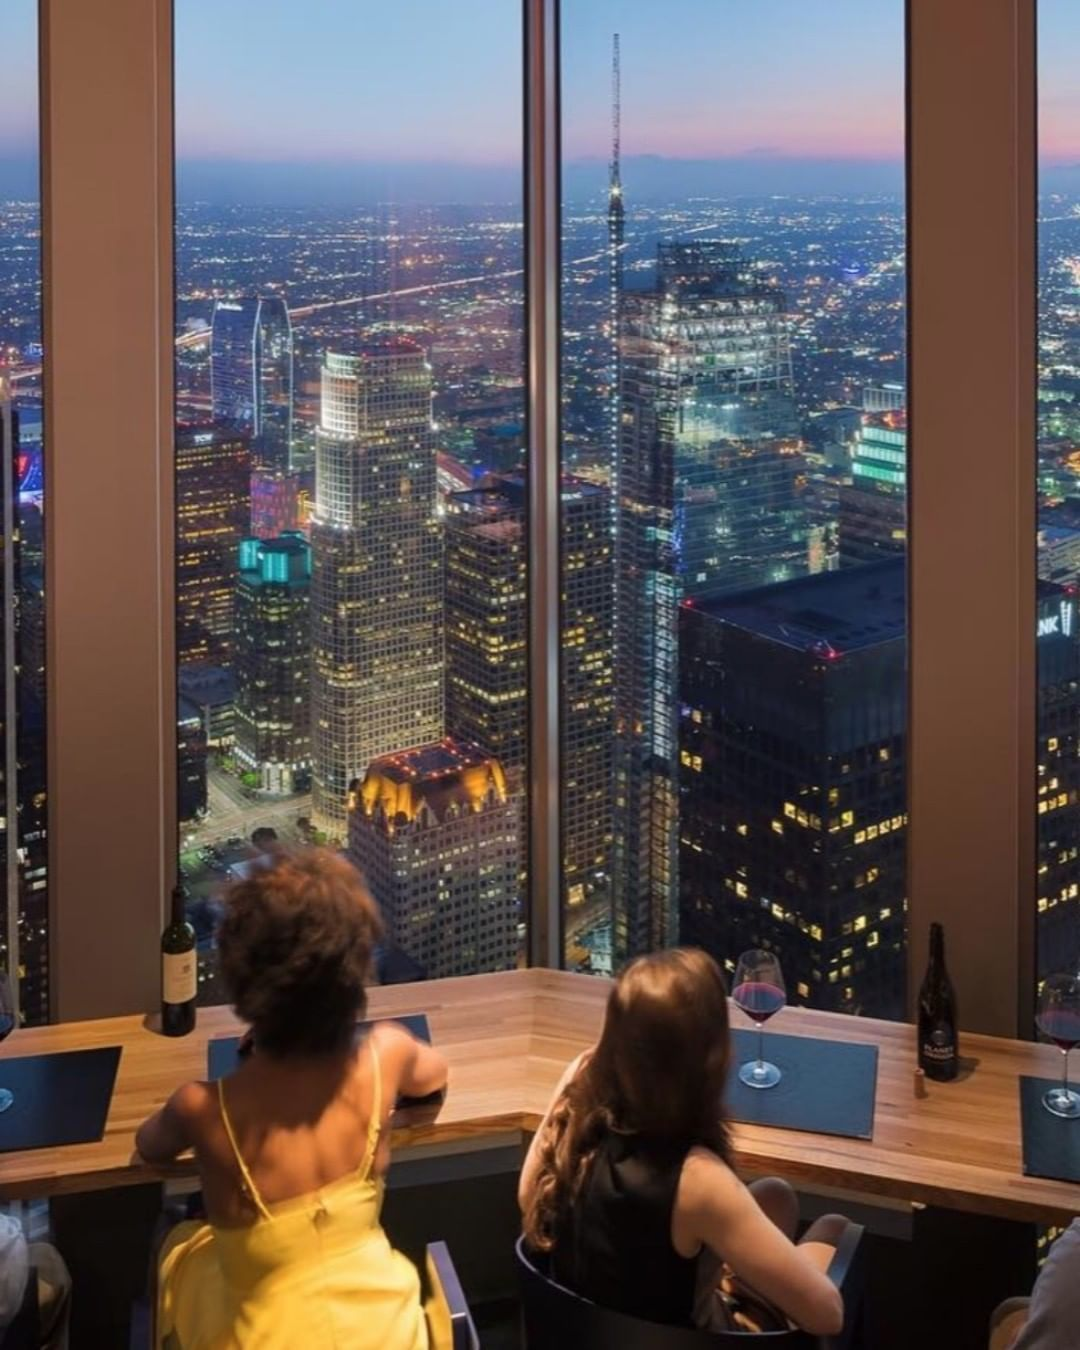 71above Restaurant Skylounge On Instagram Labor Day Hours 6 9pm Only Closed For Lunch Book Your Reservation Today To Celebrate 71 Floors Above The Hea